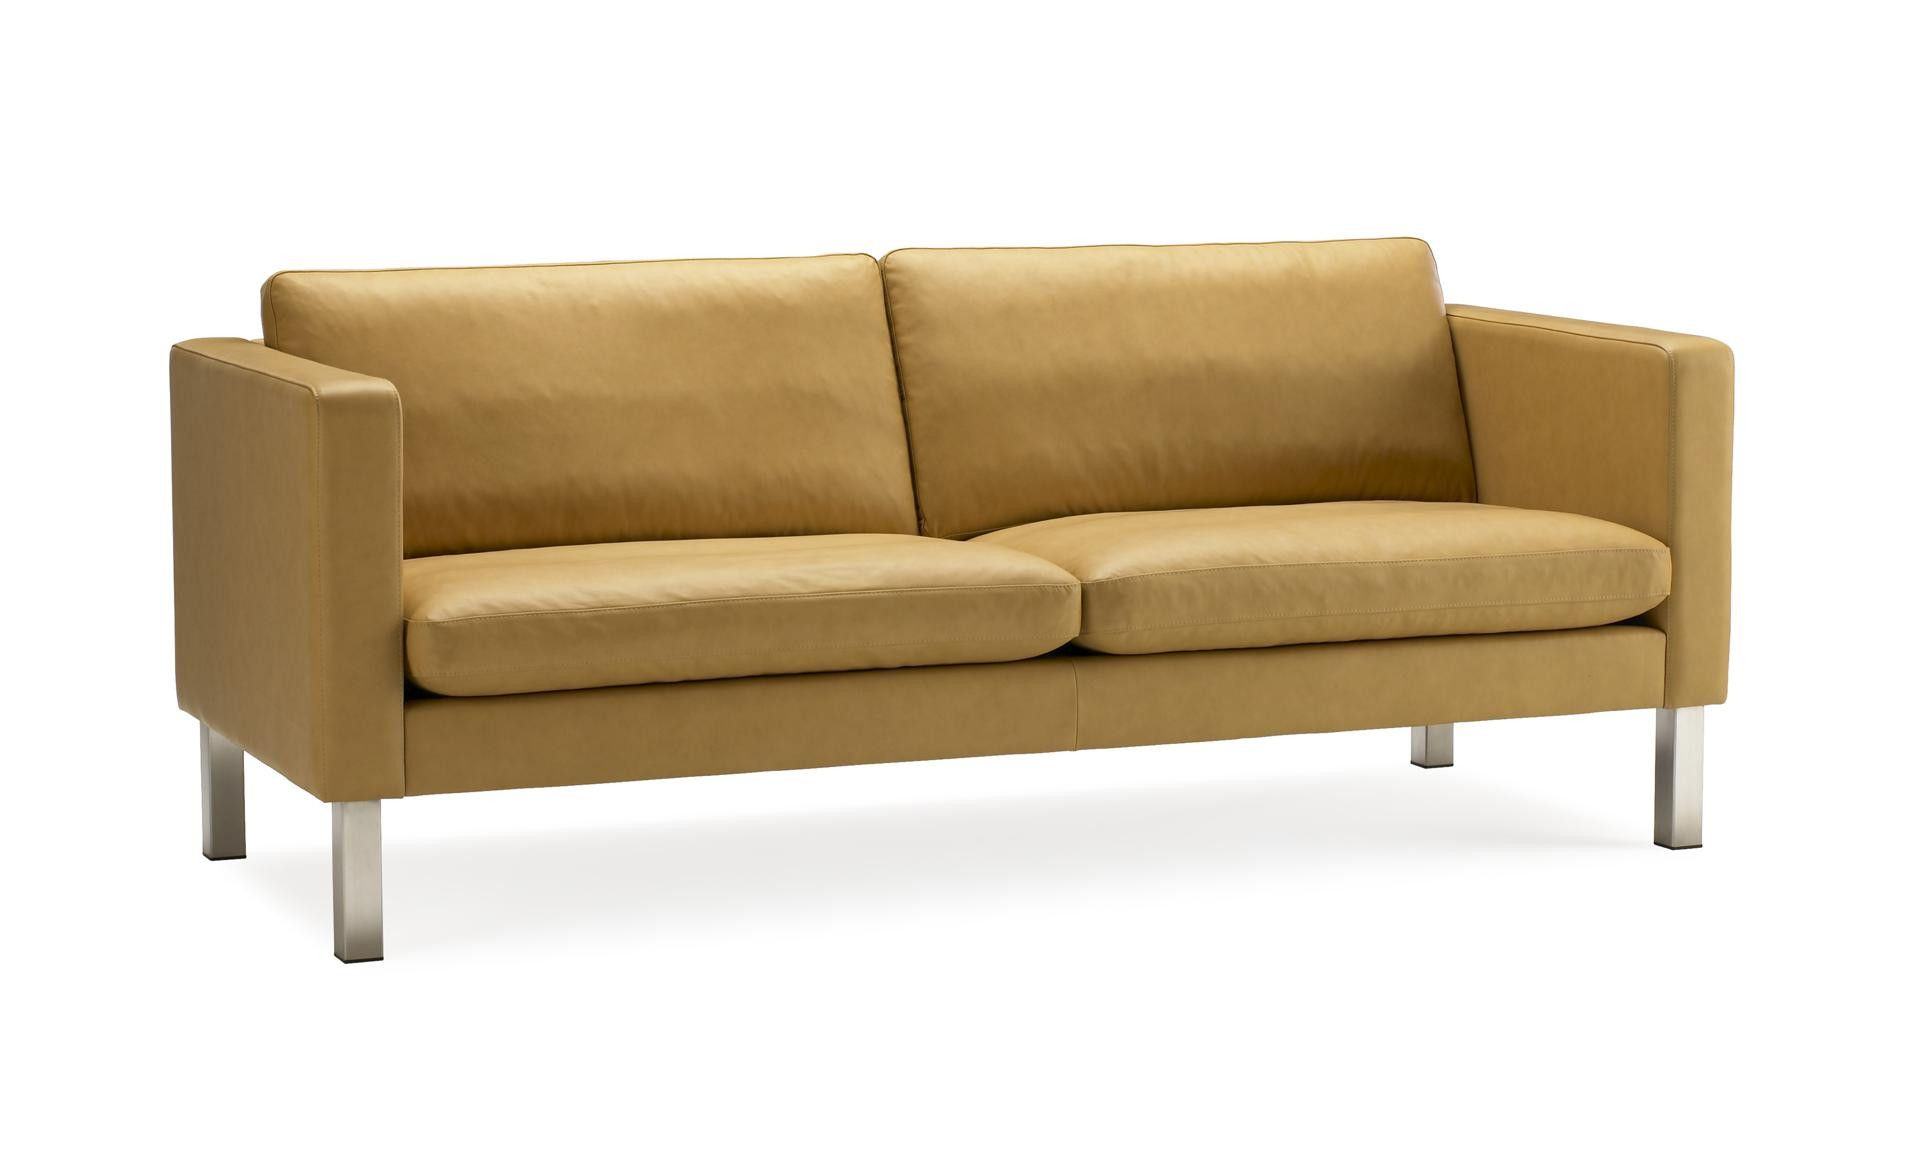 Bace Sofa Couch Potato pany Armchairs and Sofas